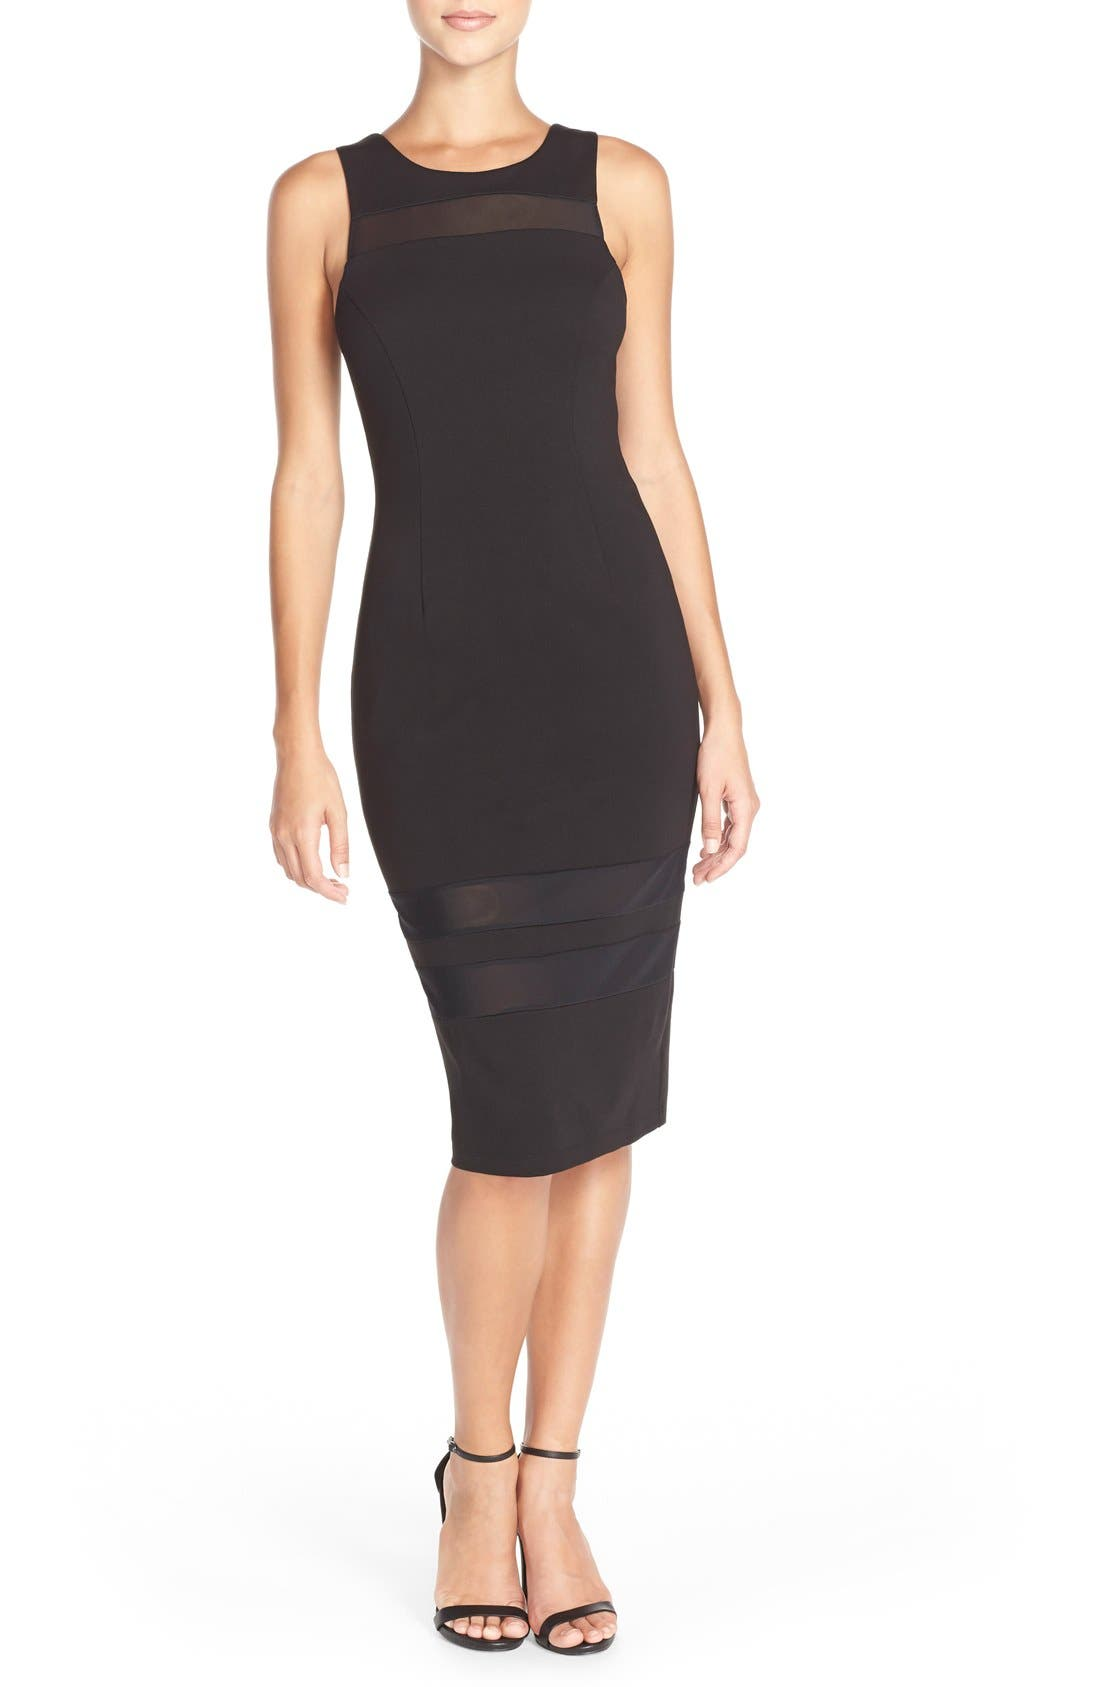 Alternate Image 1 Selected - Charlie Jade Mesh Inset Jersey Body-Con Dress